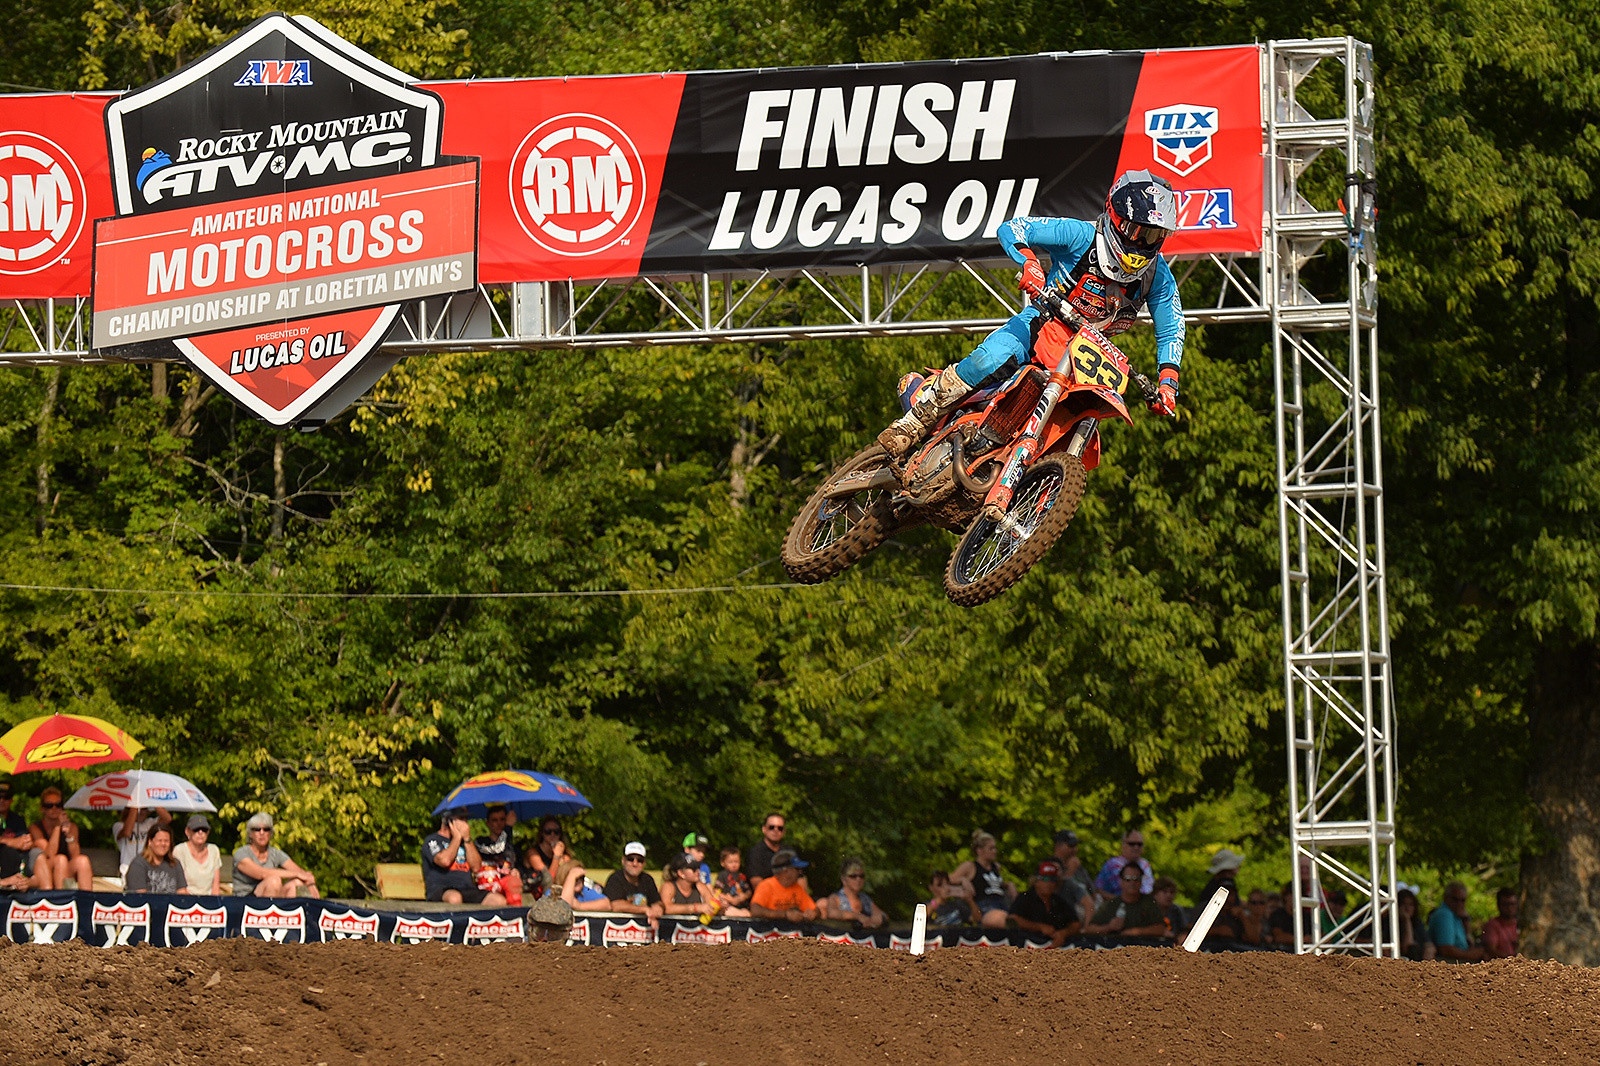 Red Bull/TLD KTM's Derek Drake has been perfect in the 250B Limited class at Loretta Lynn's, taking home the championship.